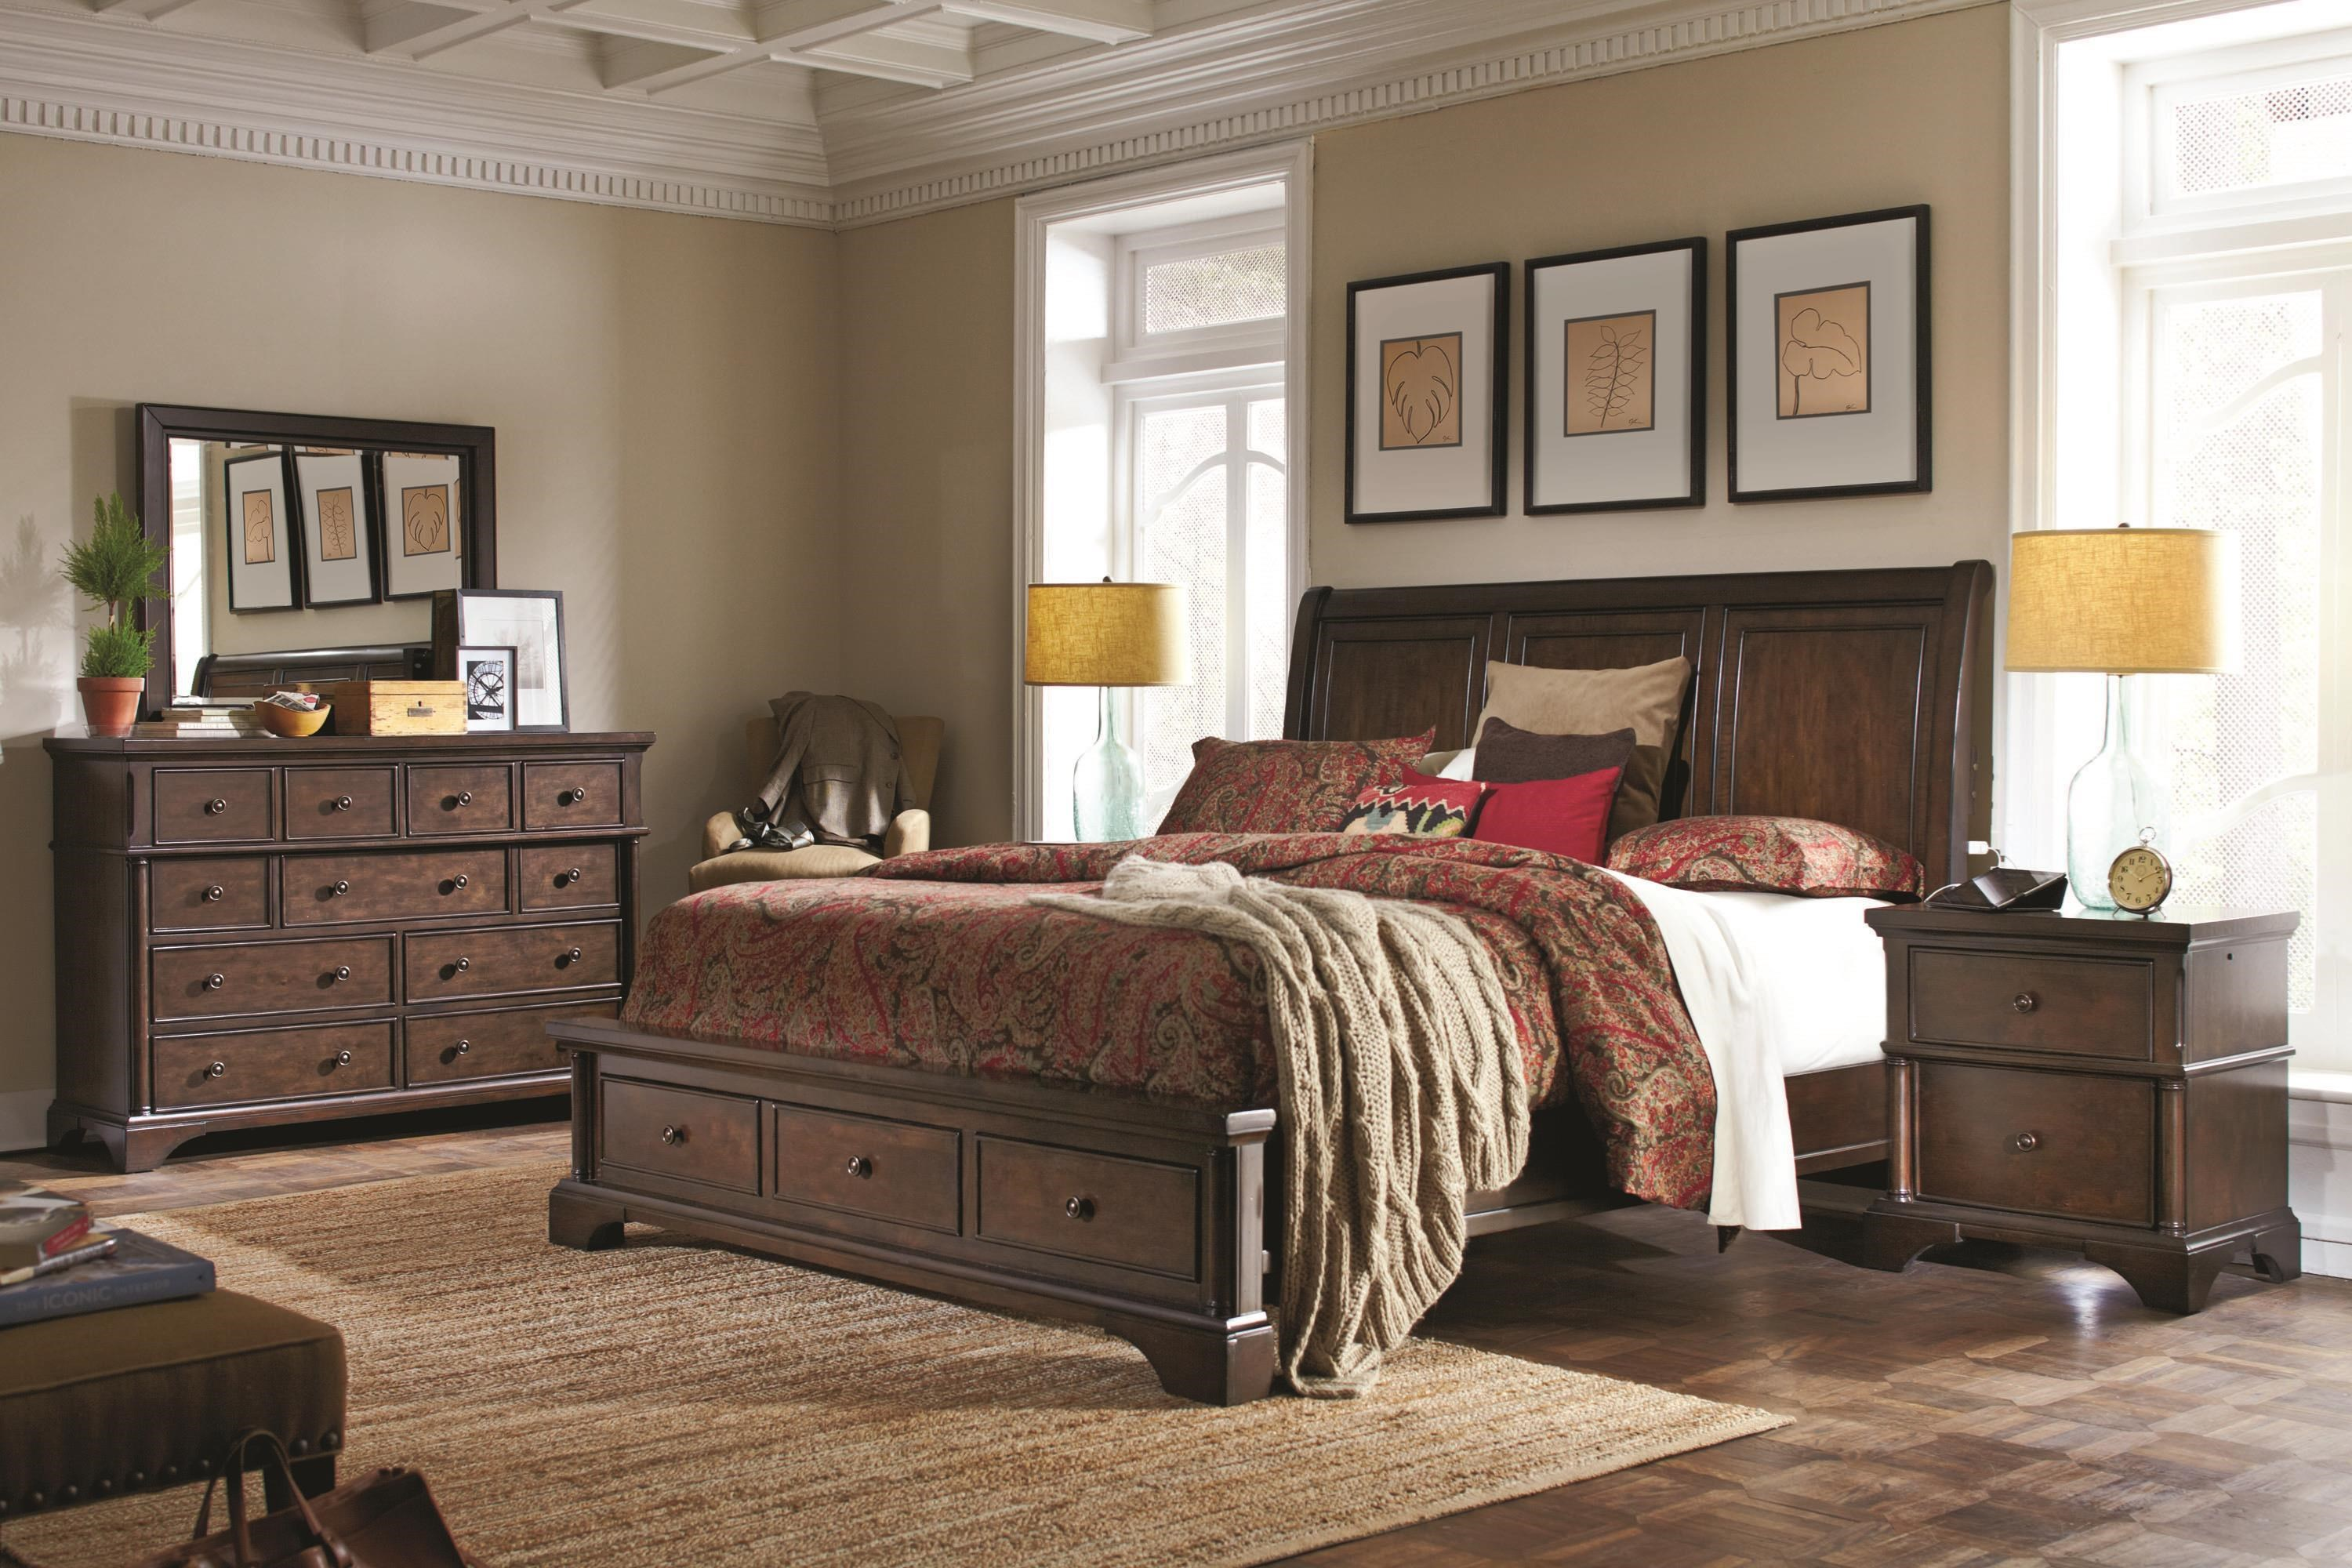 Bancroft 4 Piece Queen Storage Bedroom Group by Aspenhome at Walker's Furniture